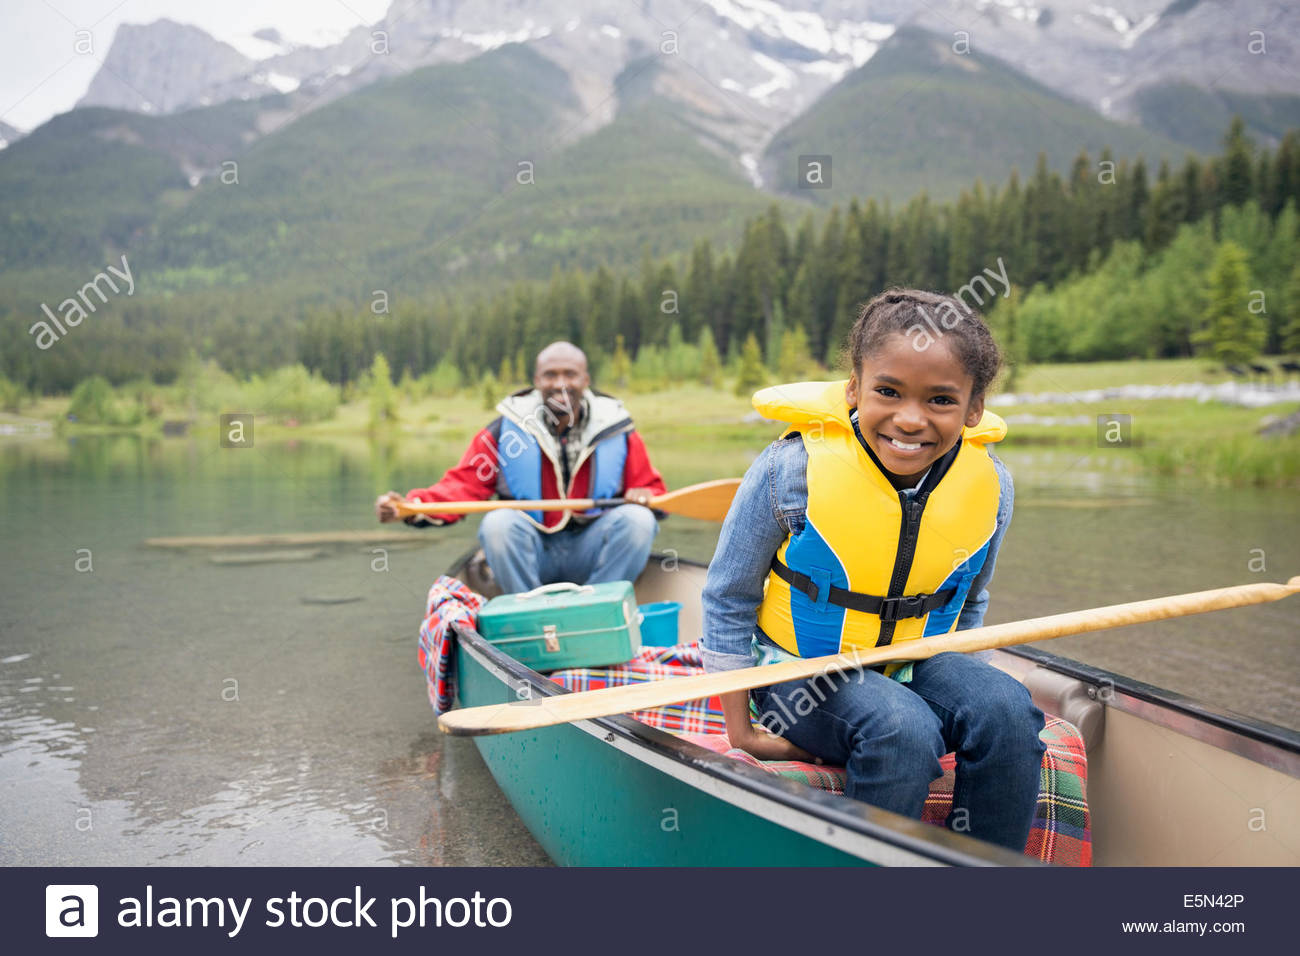 Father and daughter canoeing in lake - Stock Image